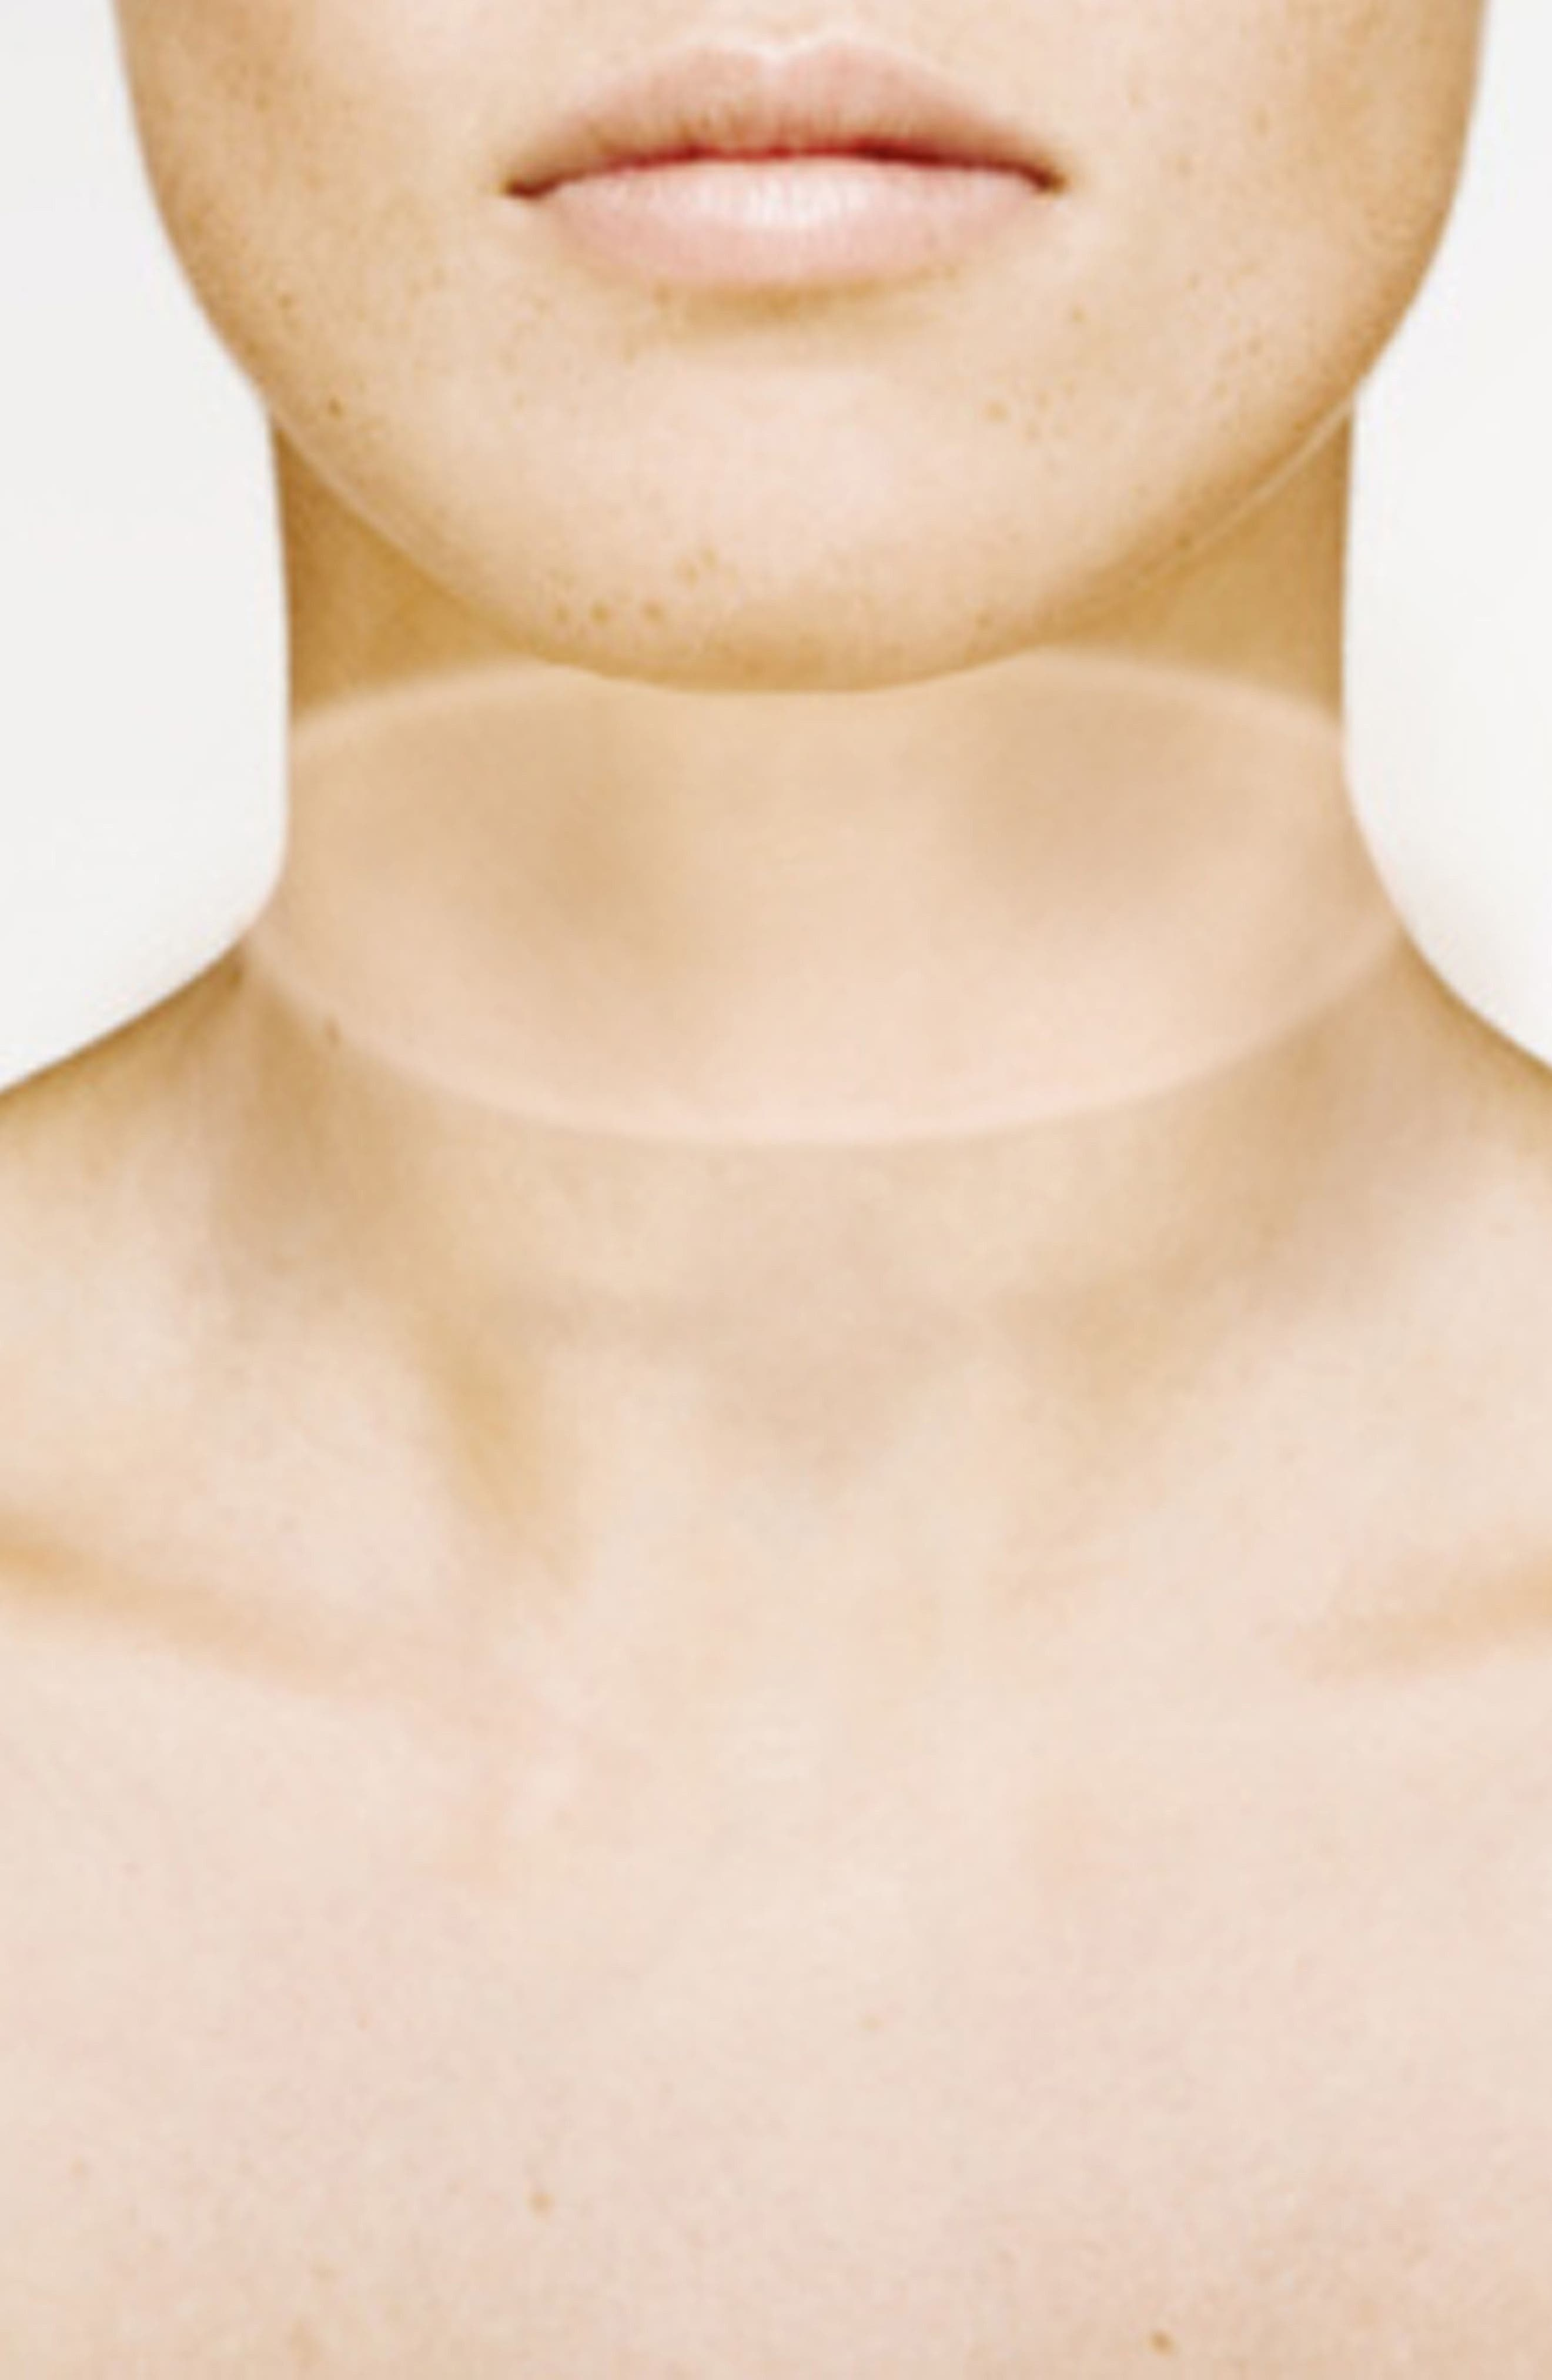 Neck Smoothing Kit,                             Alternate thumbnail 3, color,                             000